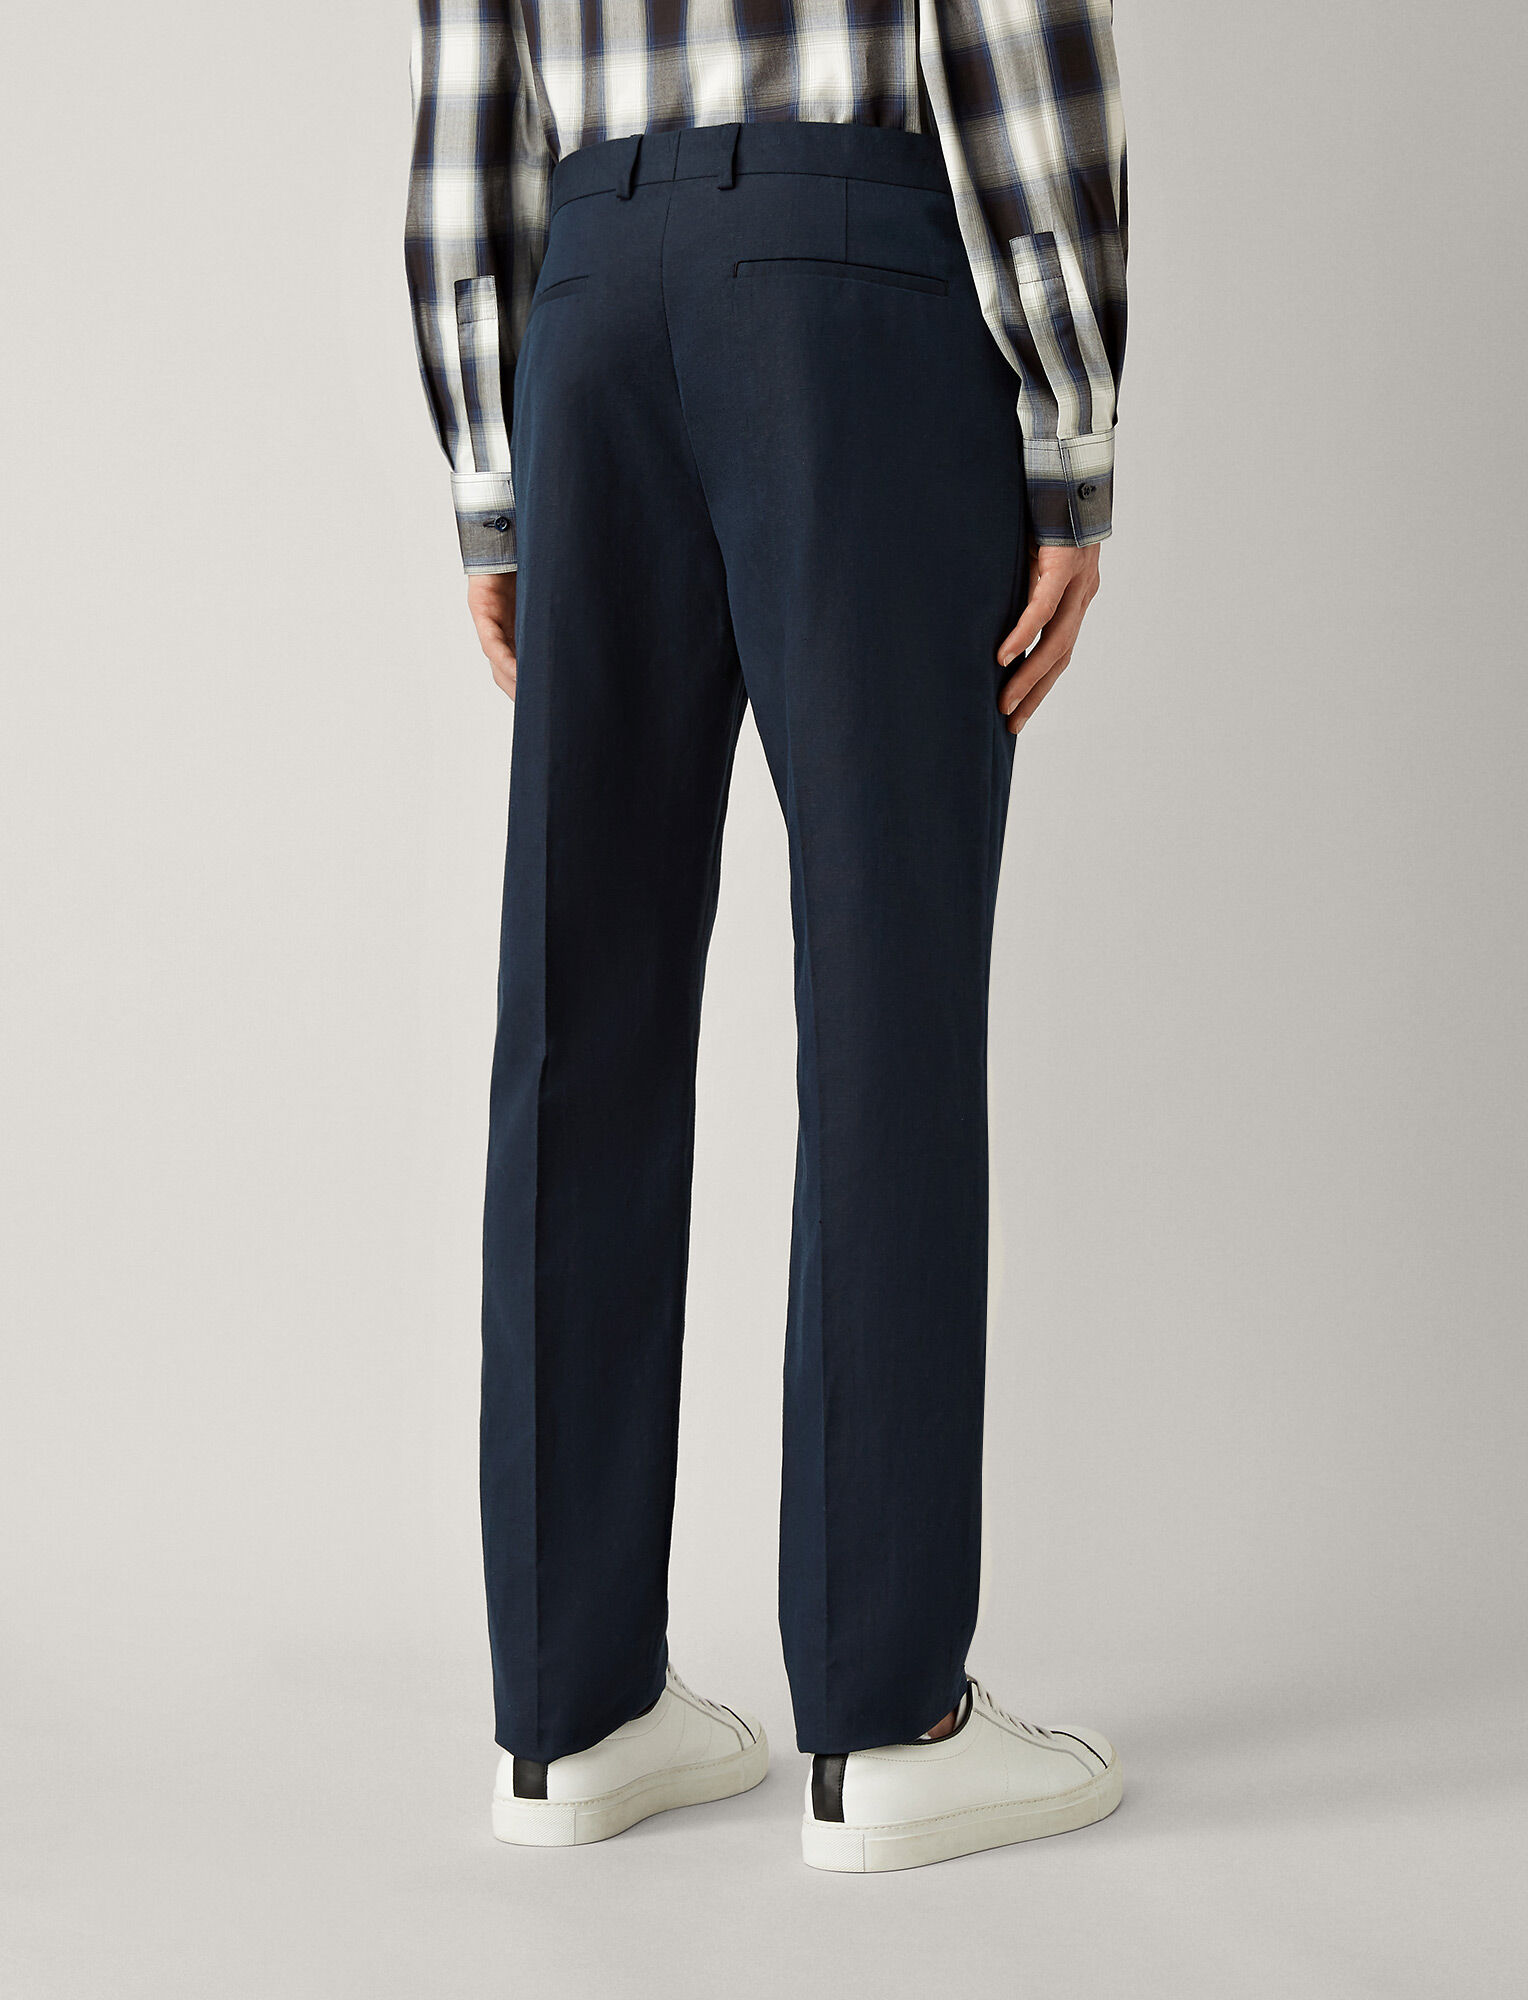 Joseph, Jack Linen Cotton Blend Trousers, in NAVY